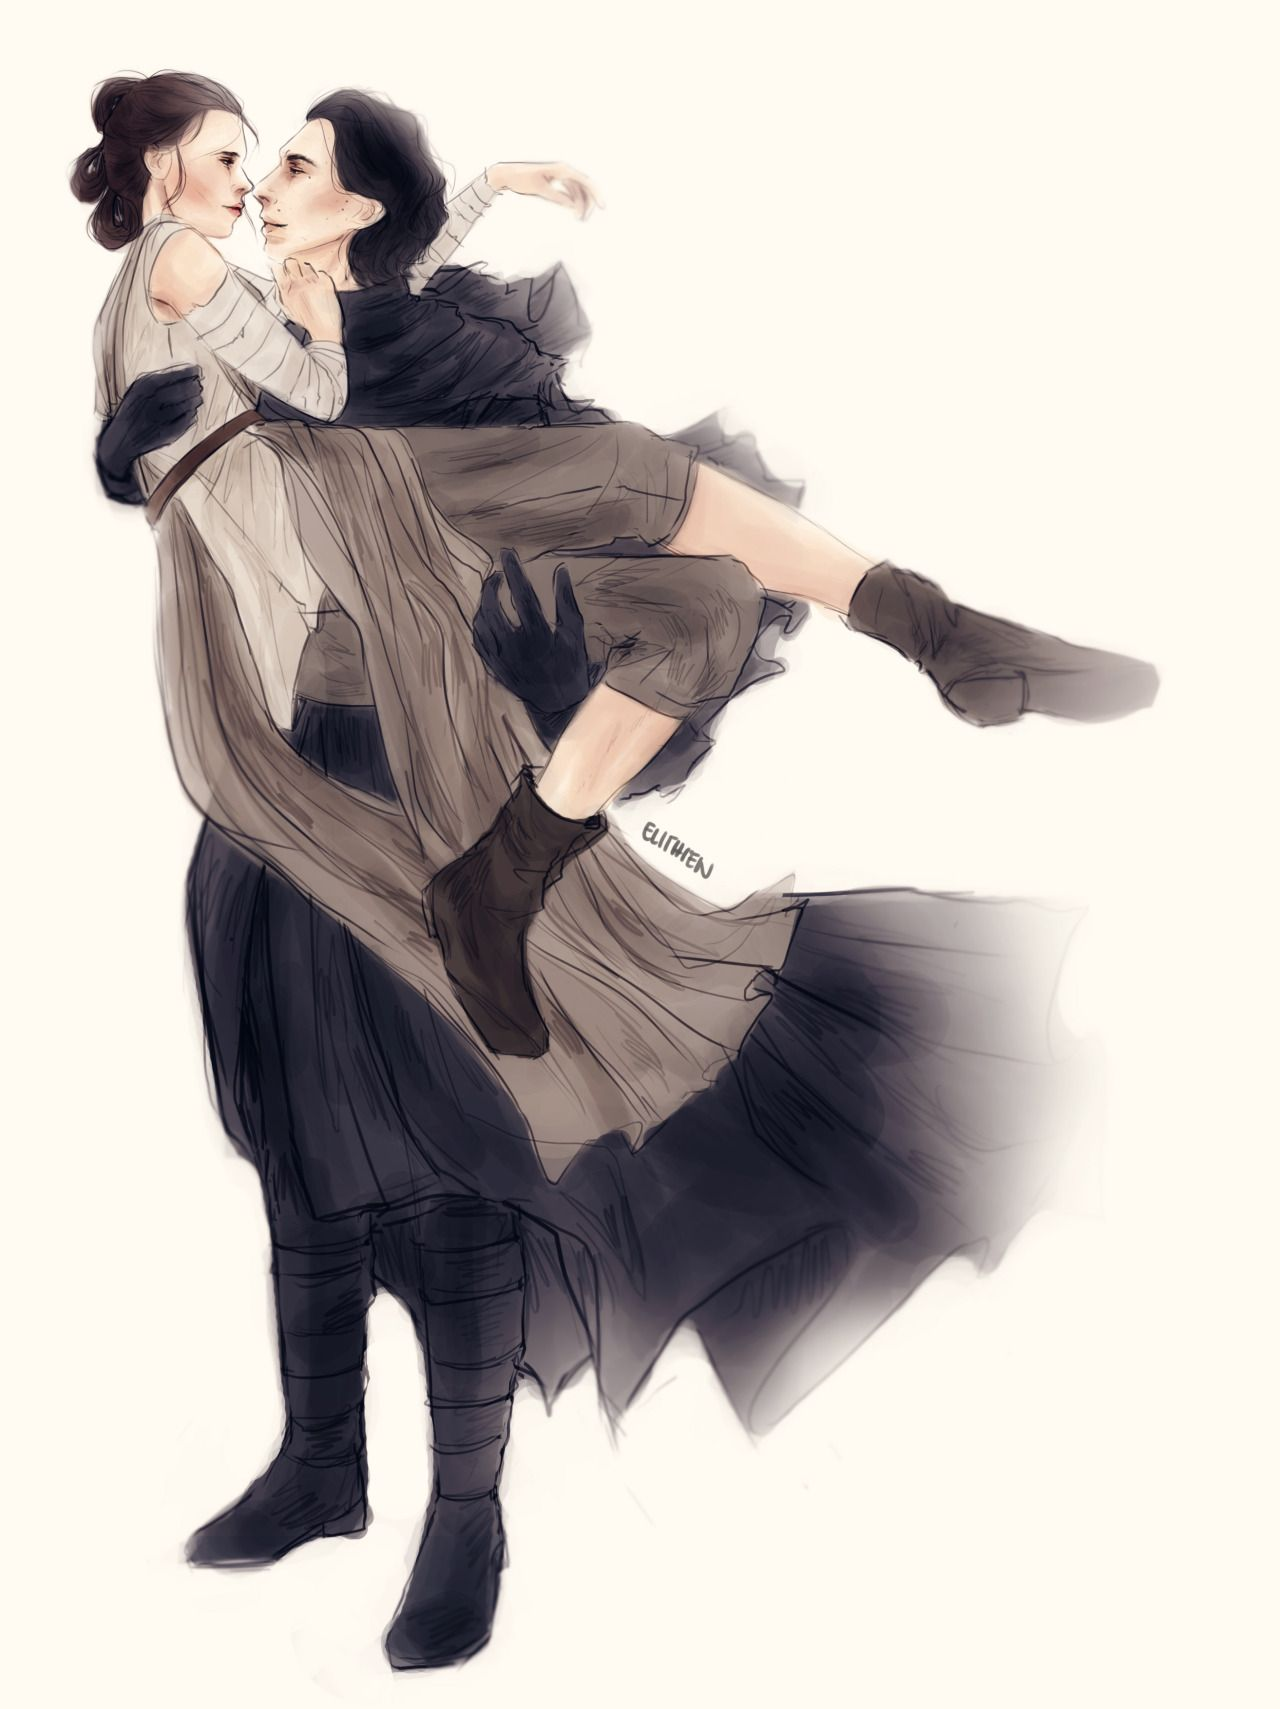 Elithien I Know Kylo Ren Bridal Style Carrying Rey Scene From The